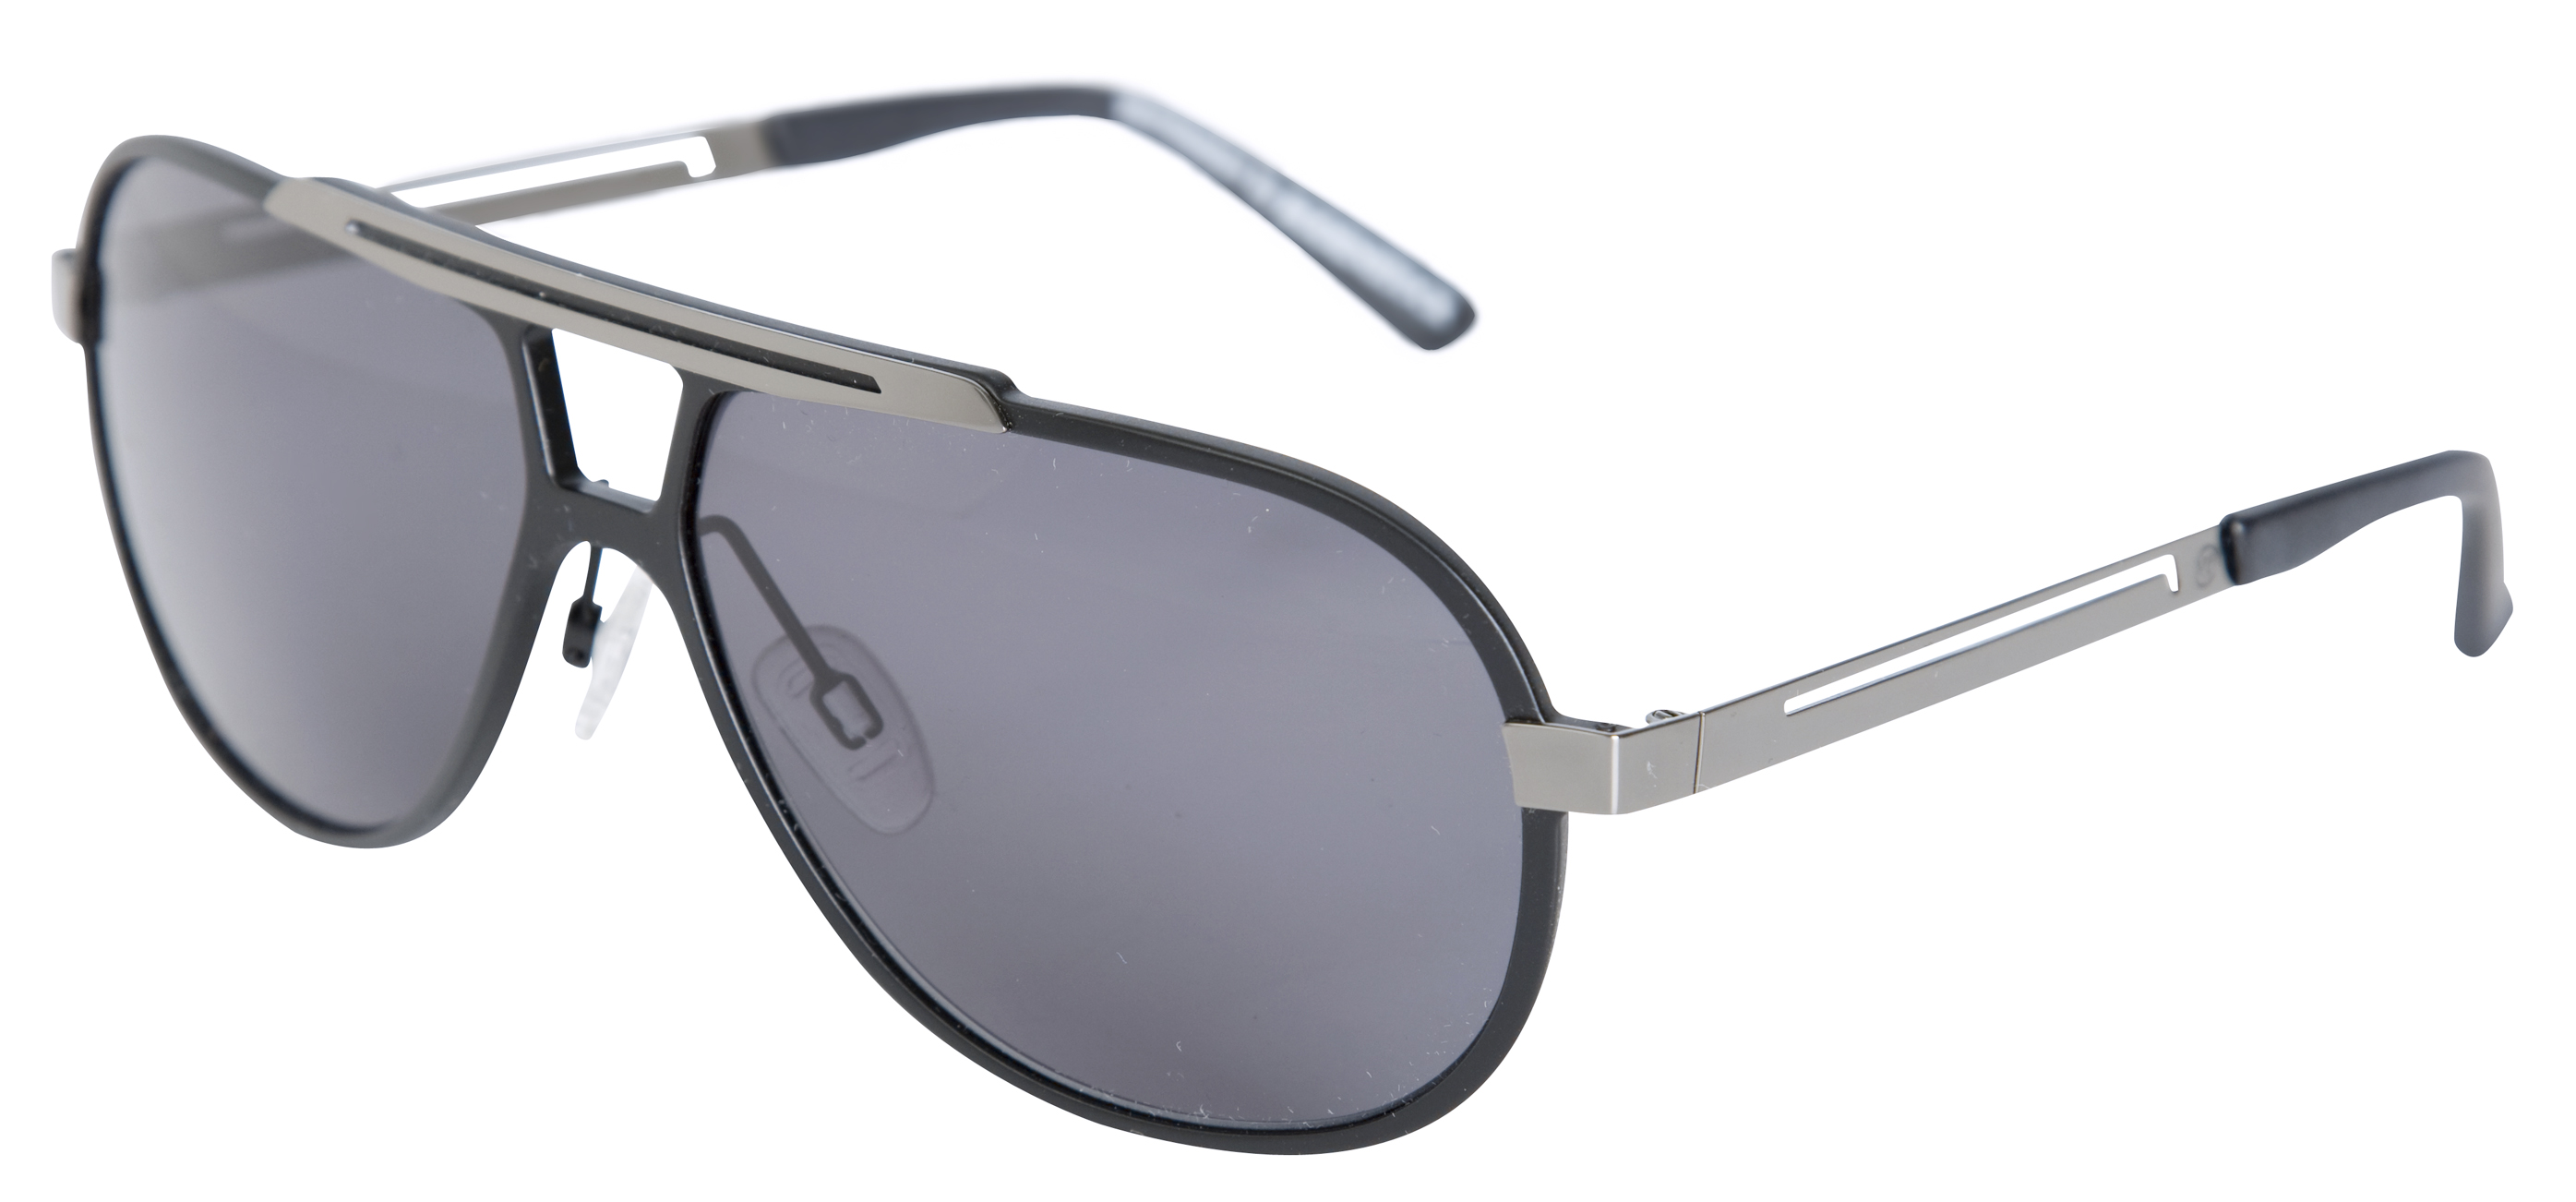 Wimbledon Gents Black Aviator Sunglasses